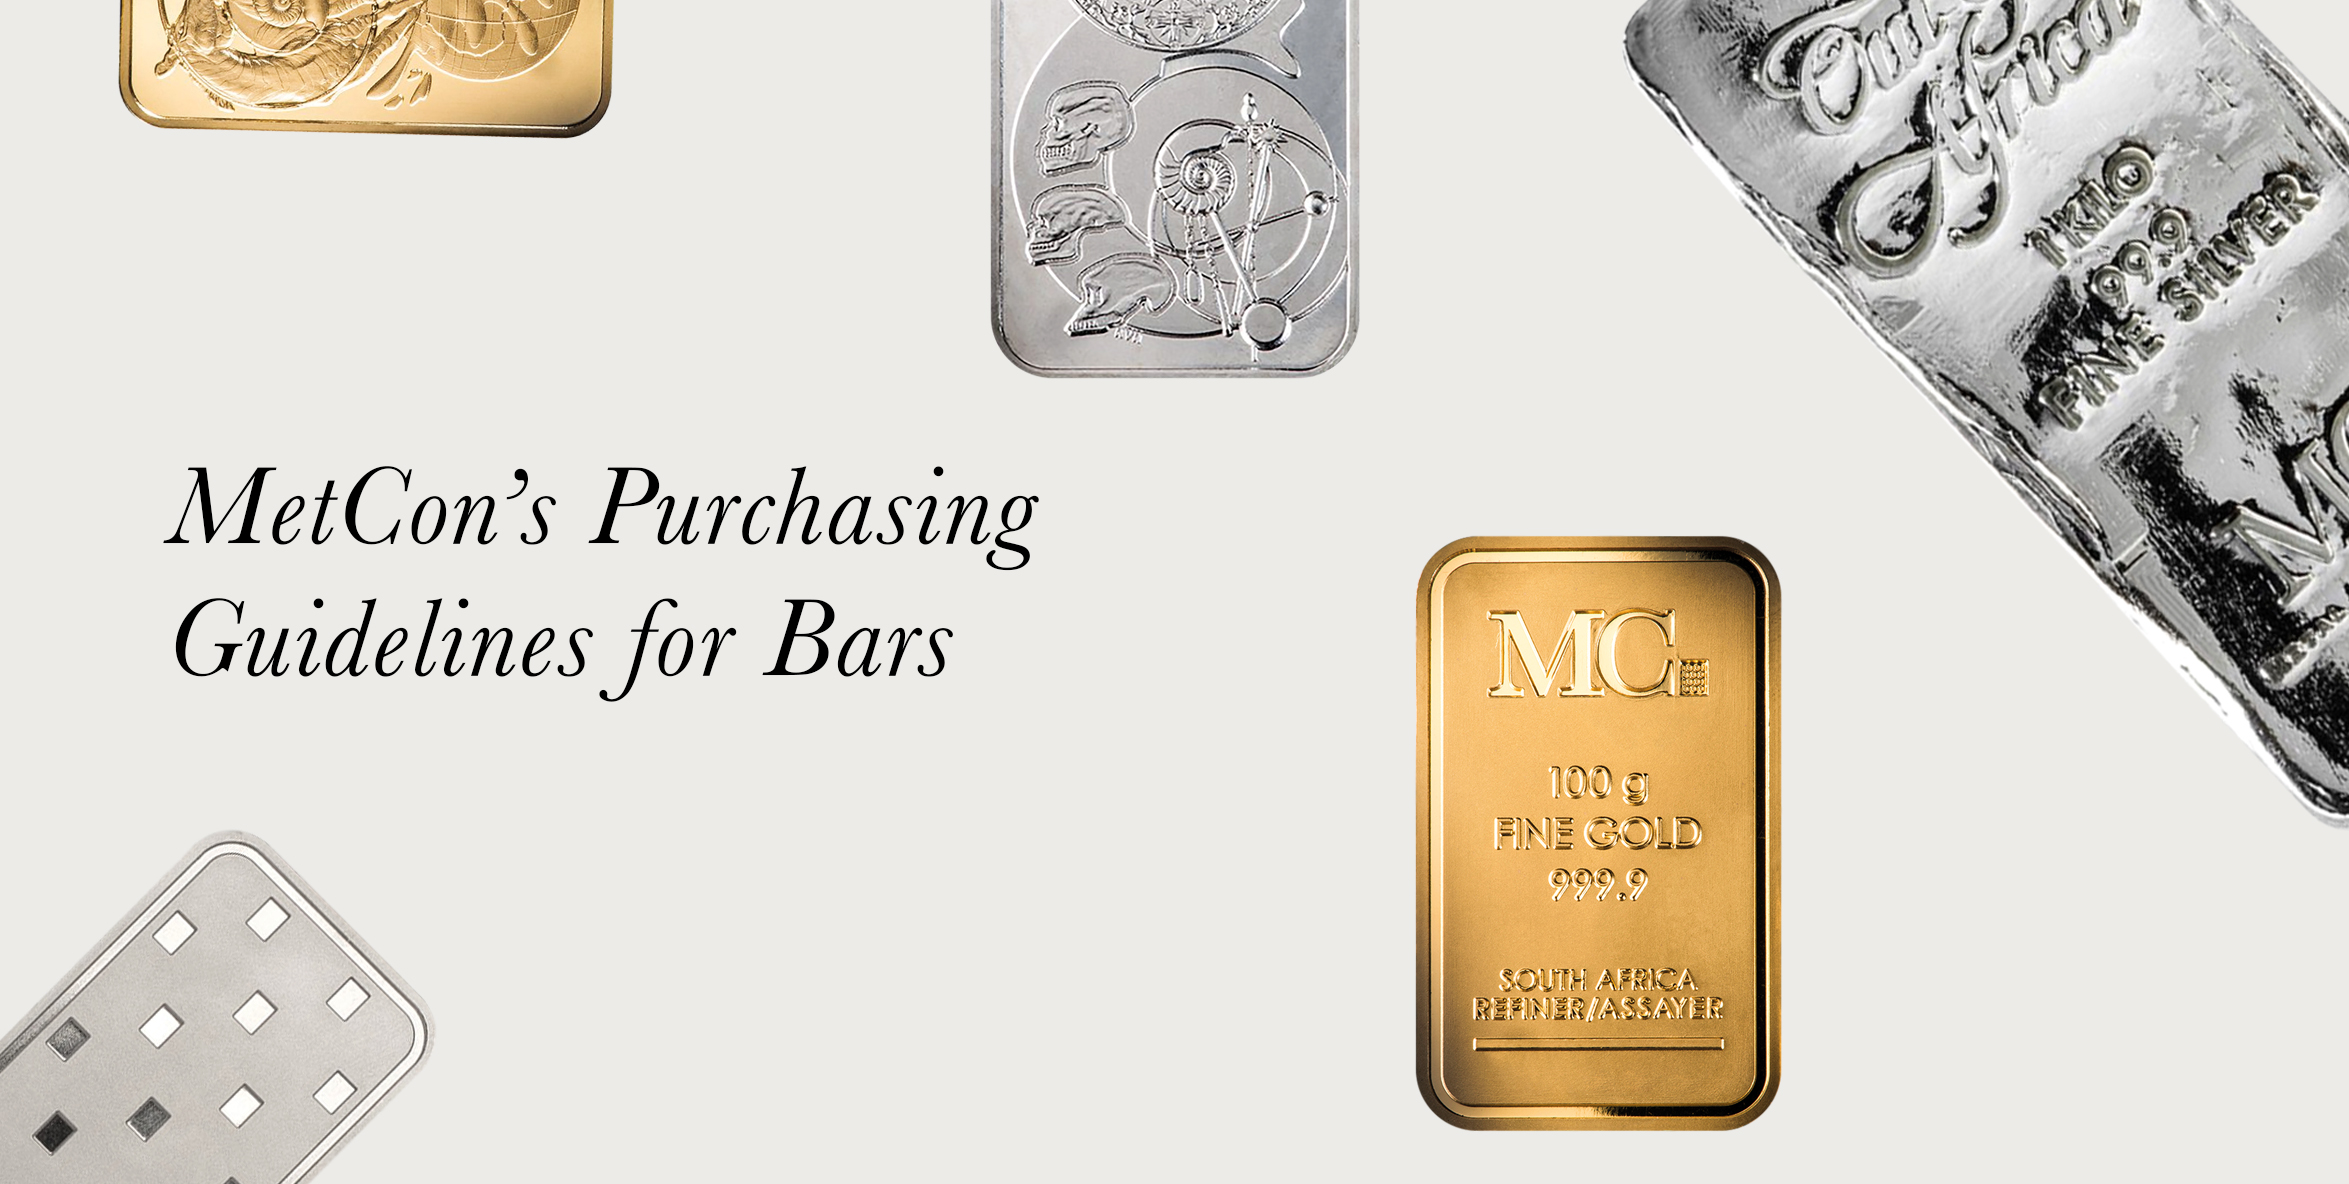 MetCon's Purchasing Guidelines for Bars